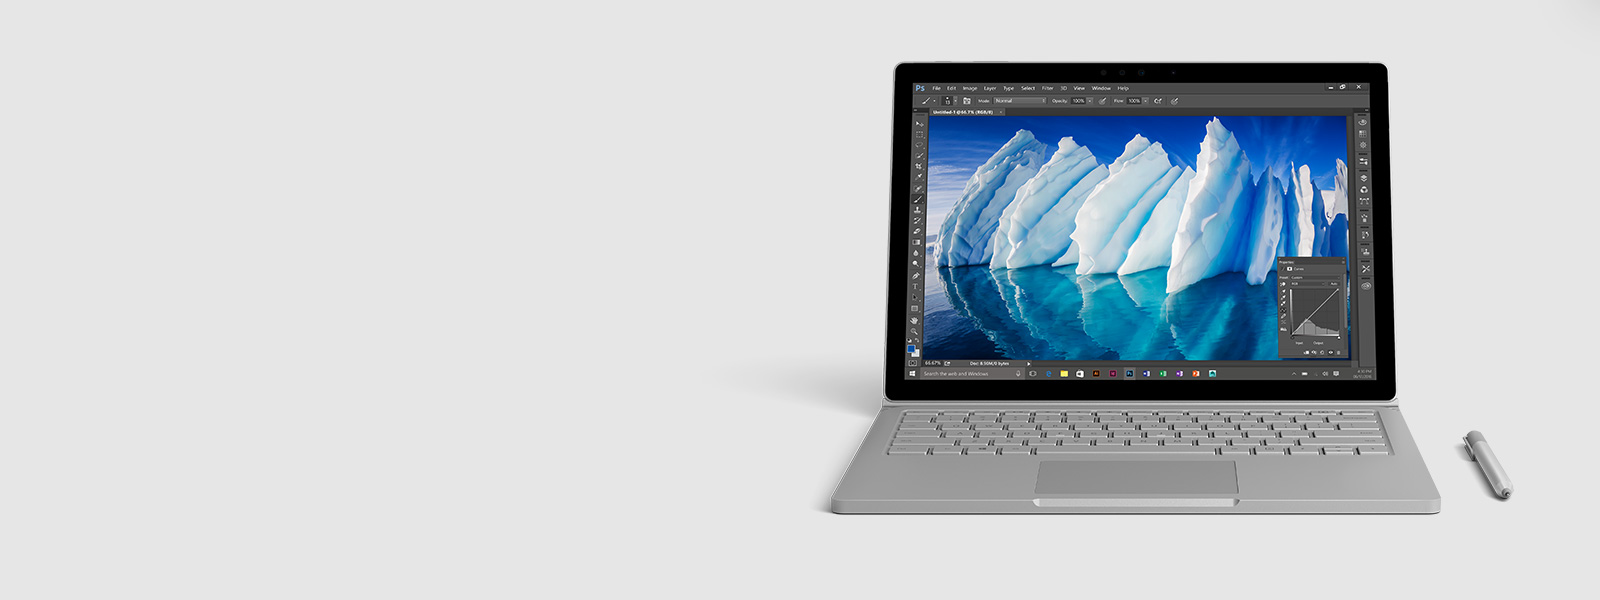 Ein Surface Book mit Performance Base und Surface-Stift